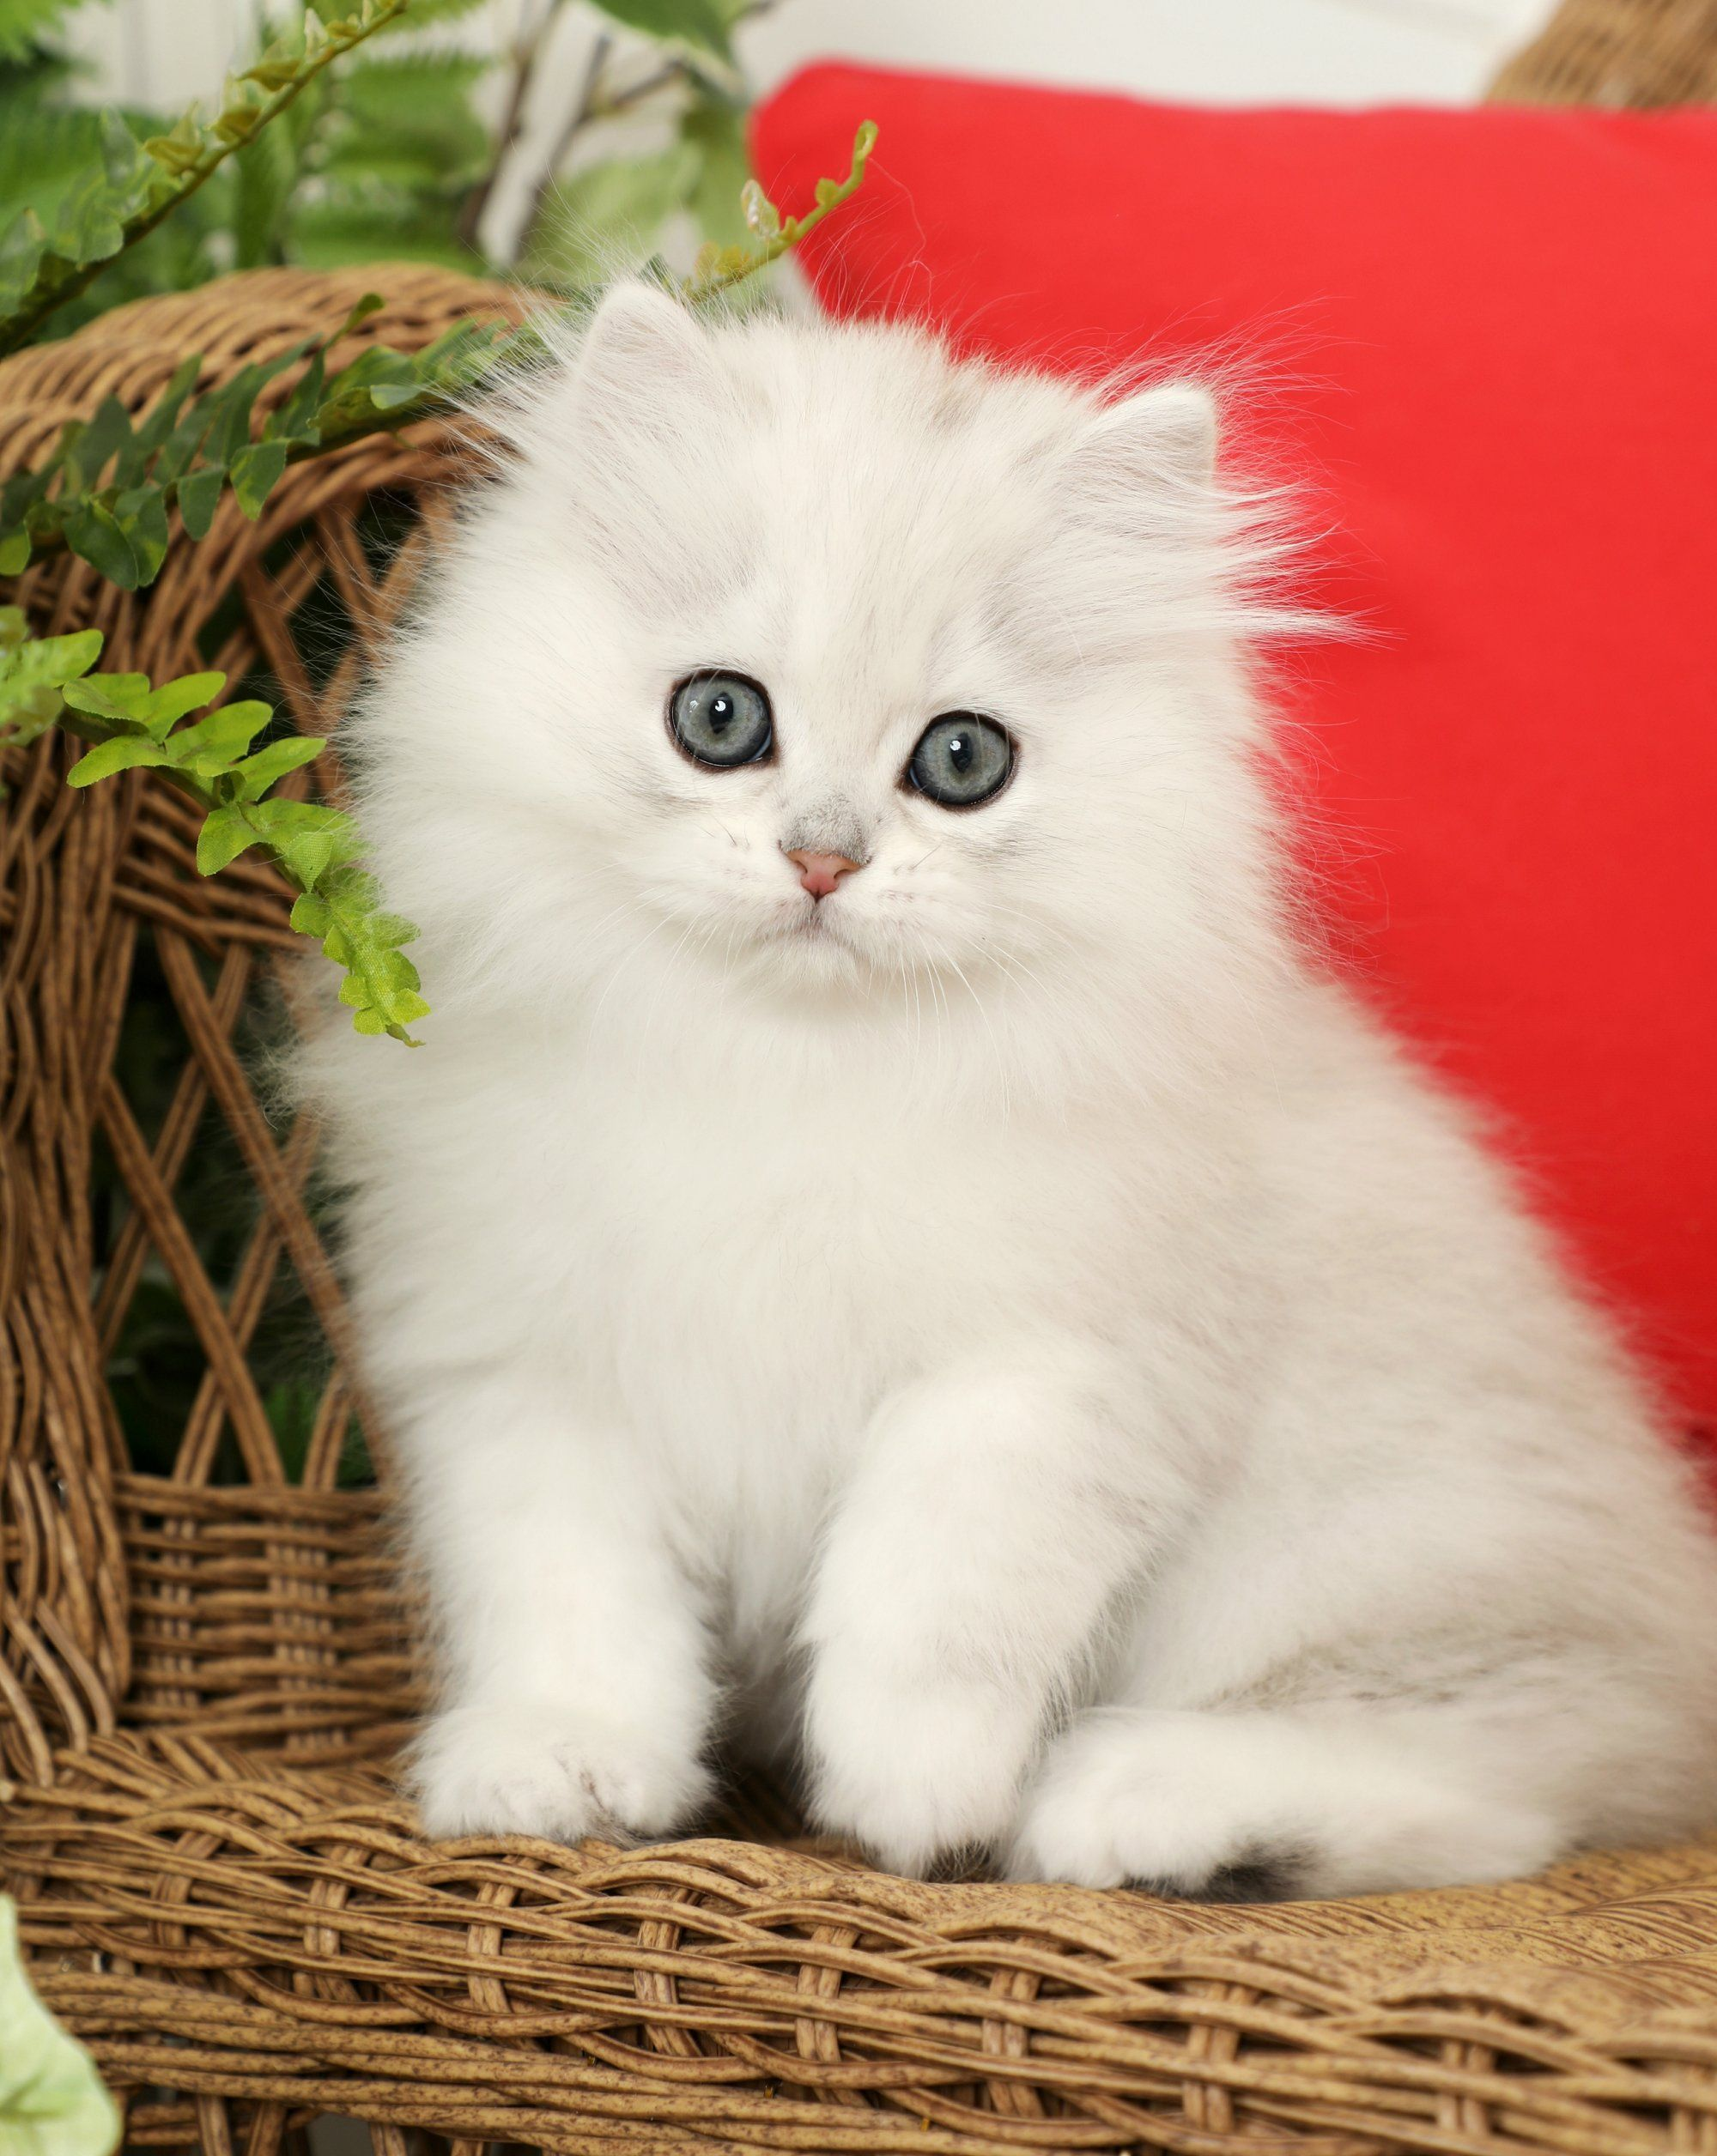 Muffin Chinchilla Silver Male Persian Currently Available Pretty Cats Cute Cats And Dogs Persian Kittens